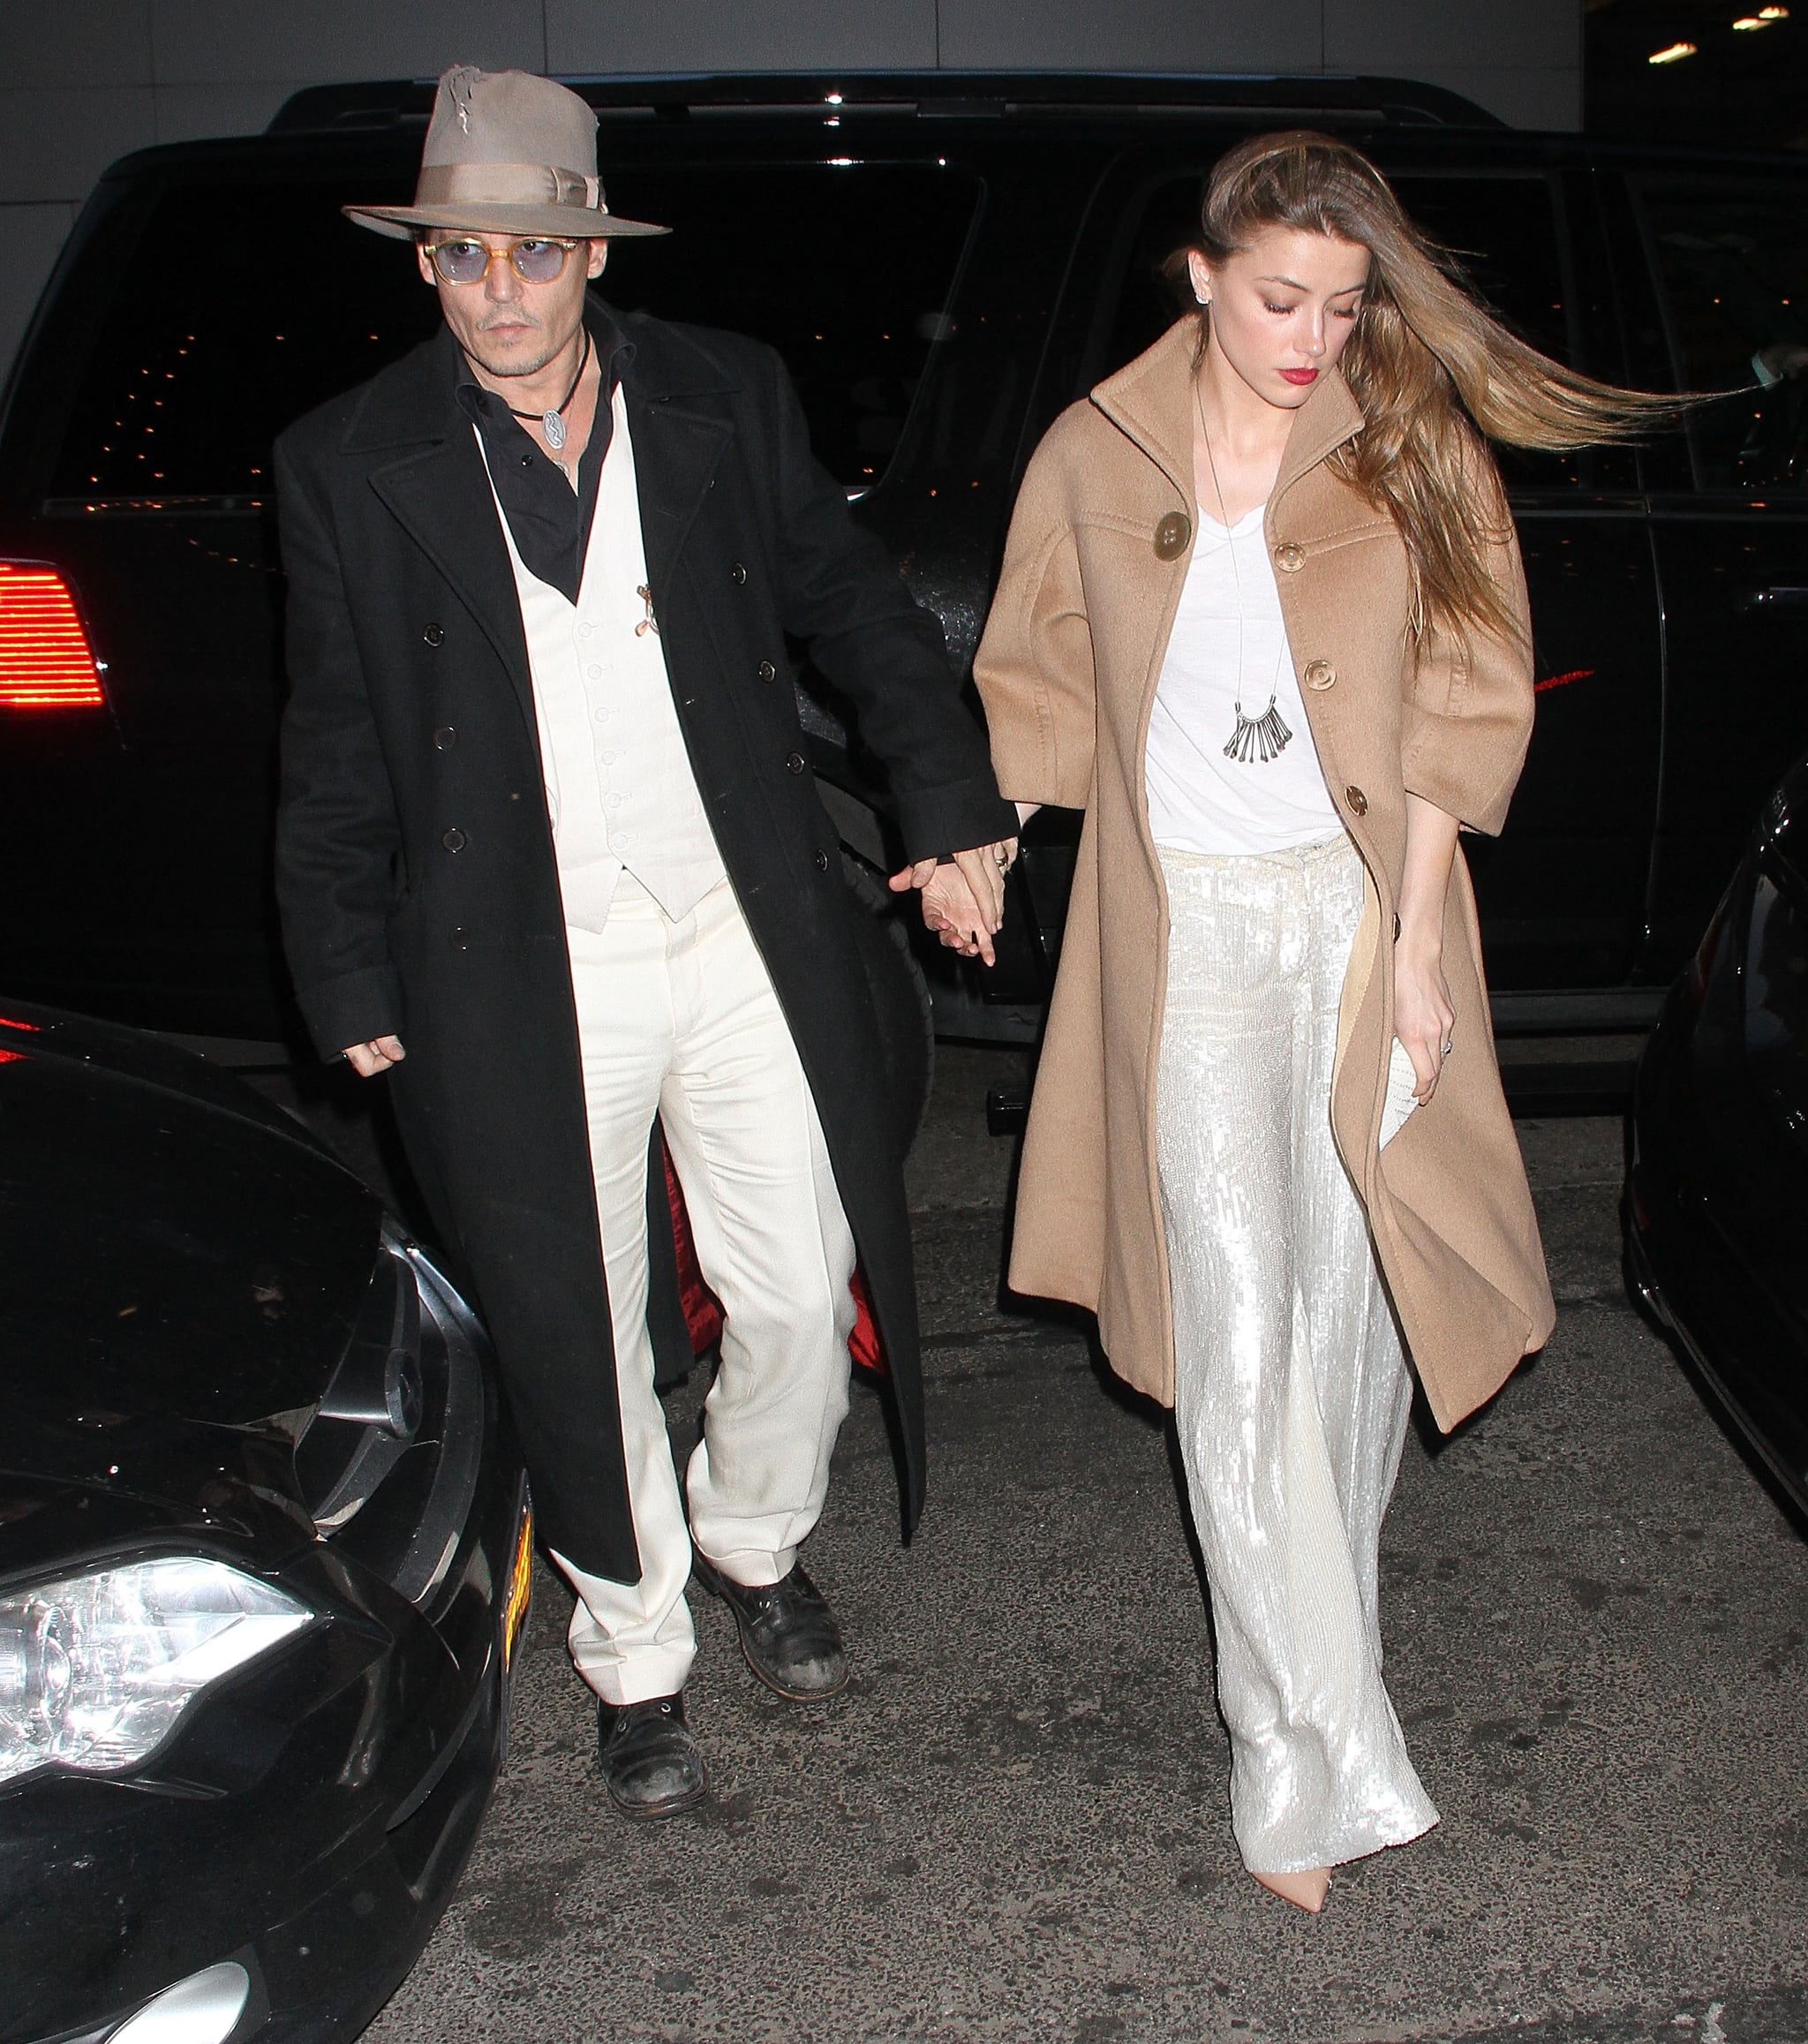 Johnny Depp and Amber Heard Have a Broadway Date Night